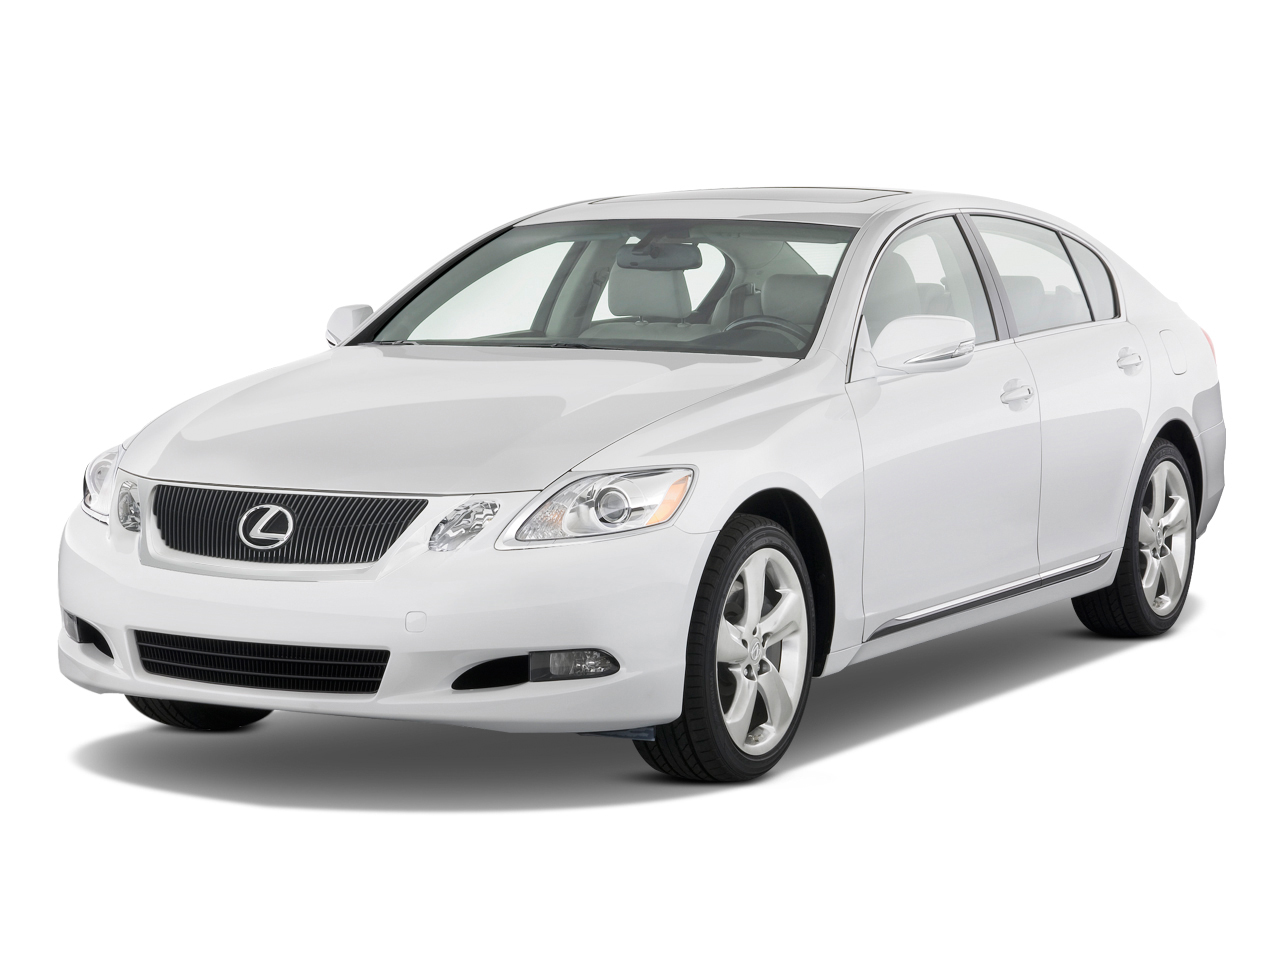 2010 Lexus Gs 350 Review Ratings Specs Prices And